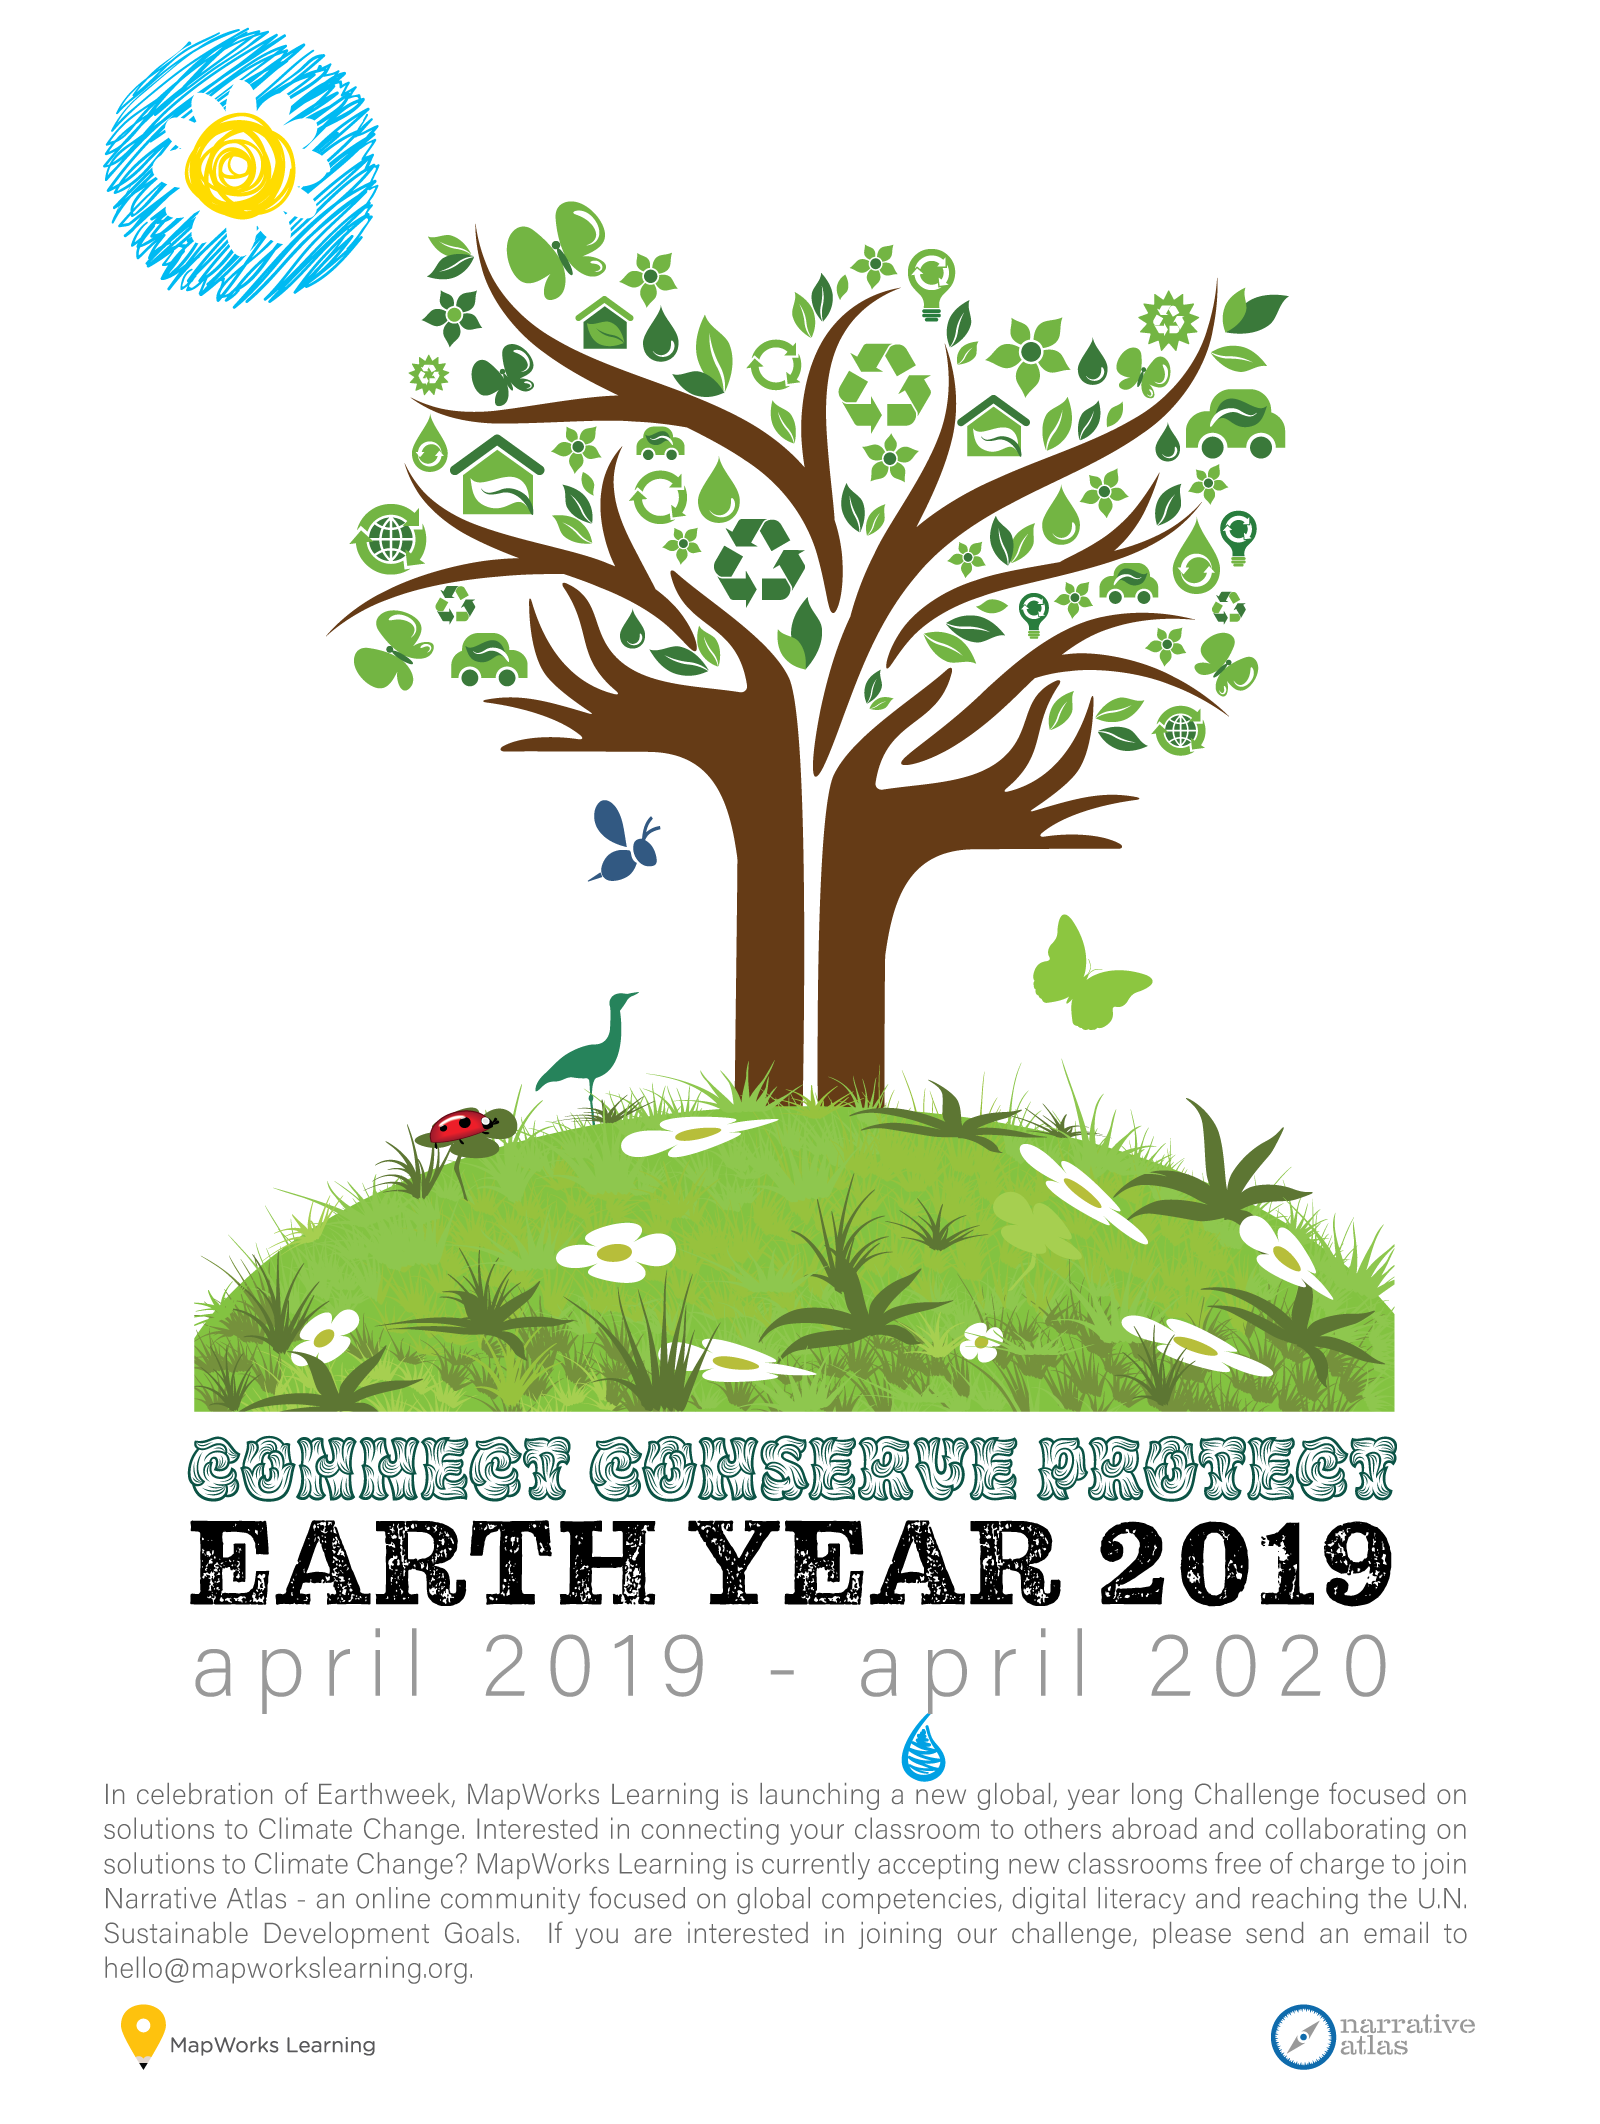 MapWorks Learning - EARTH YEAR Campaign